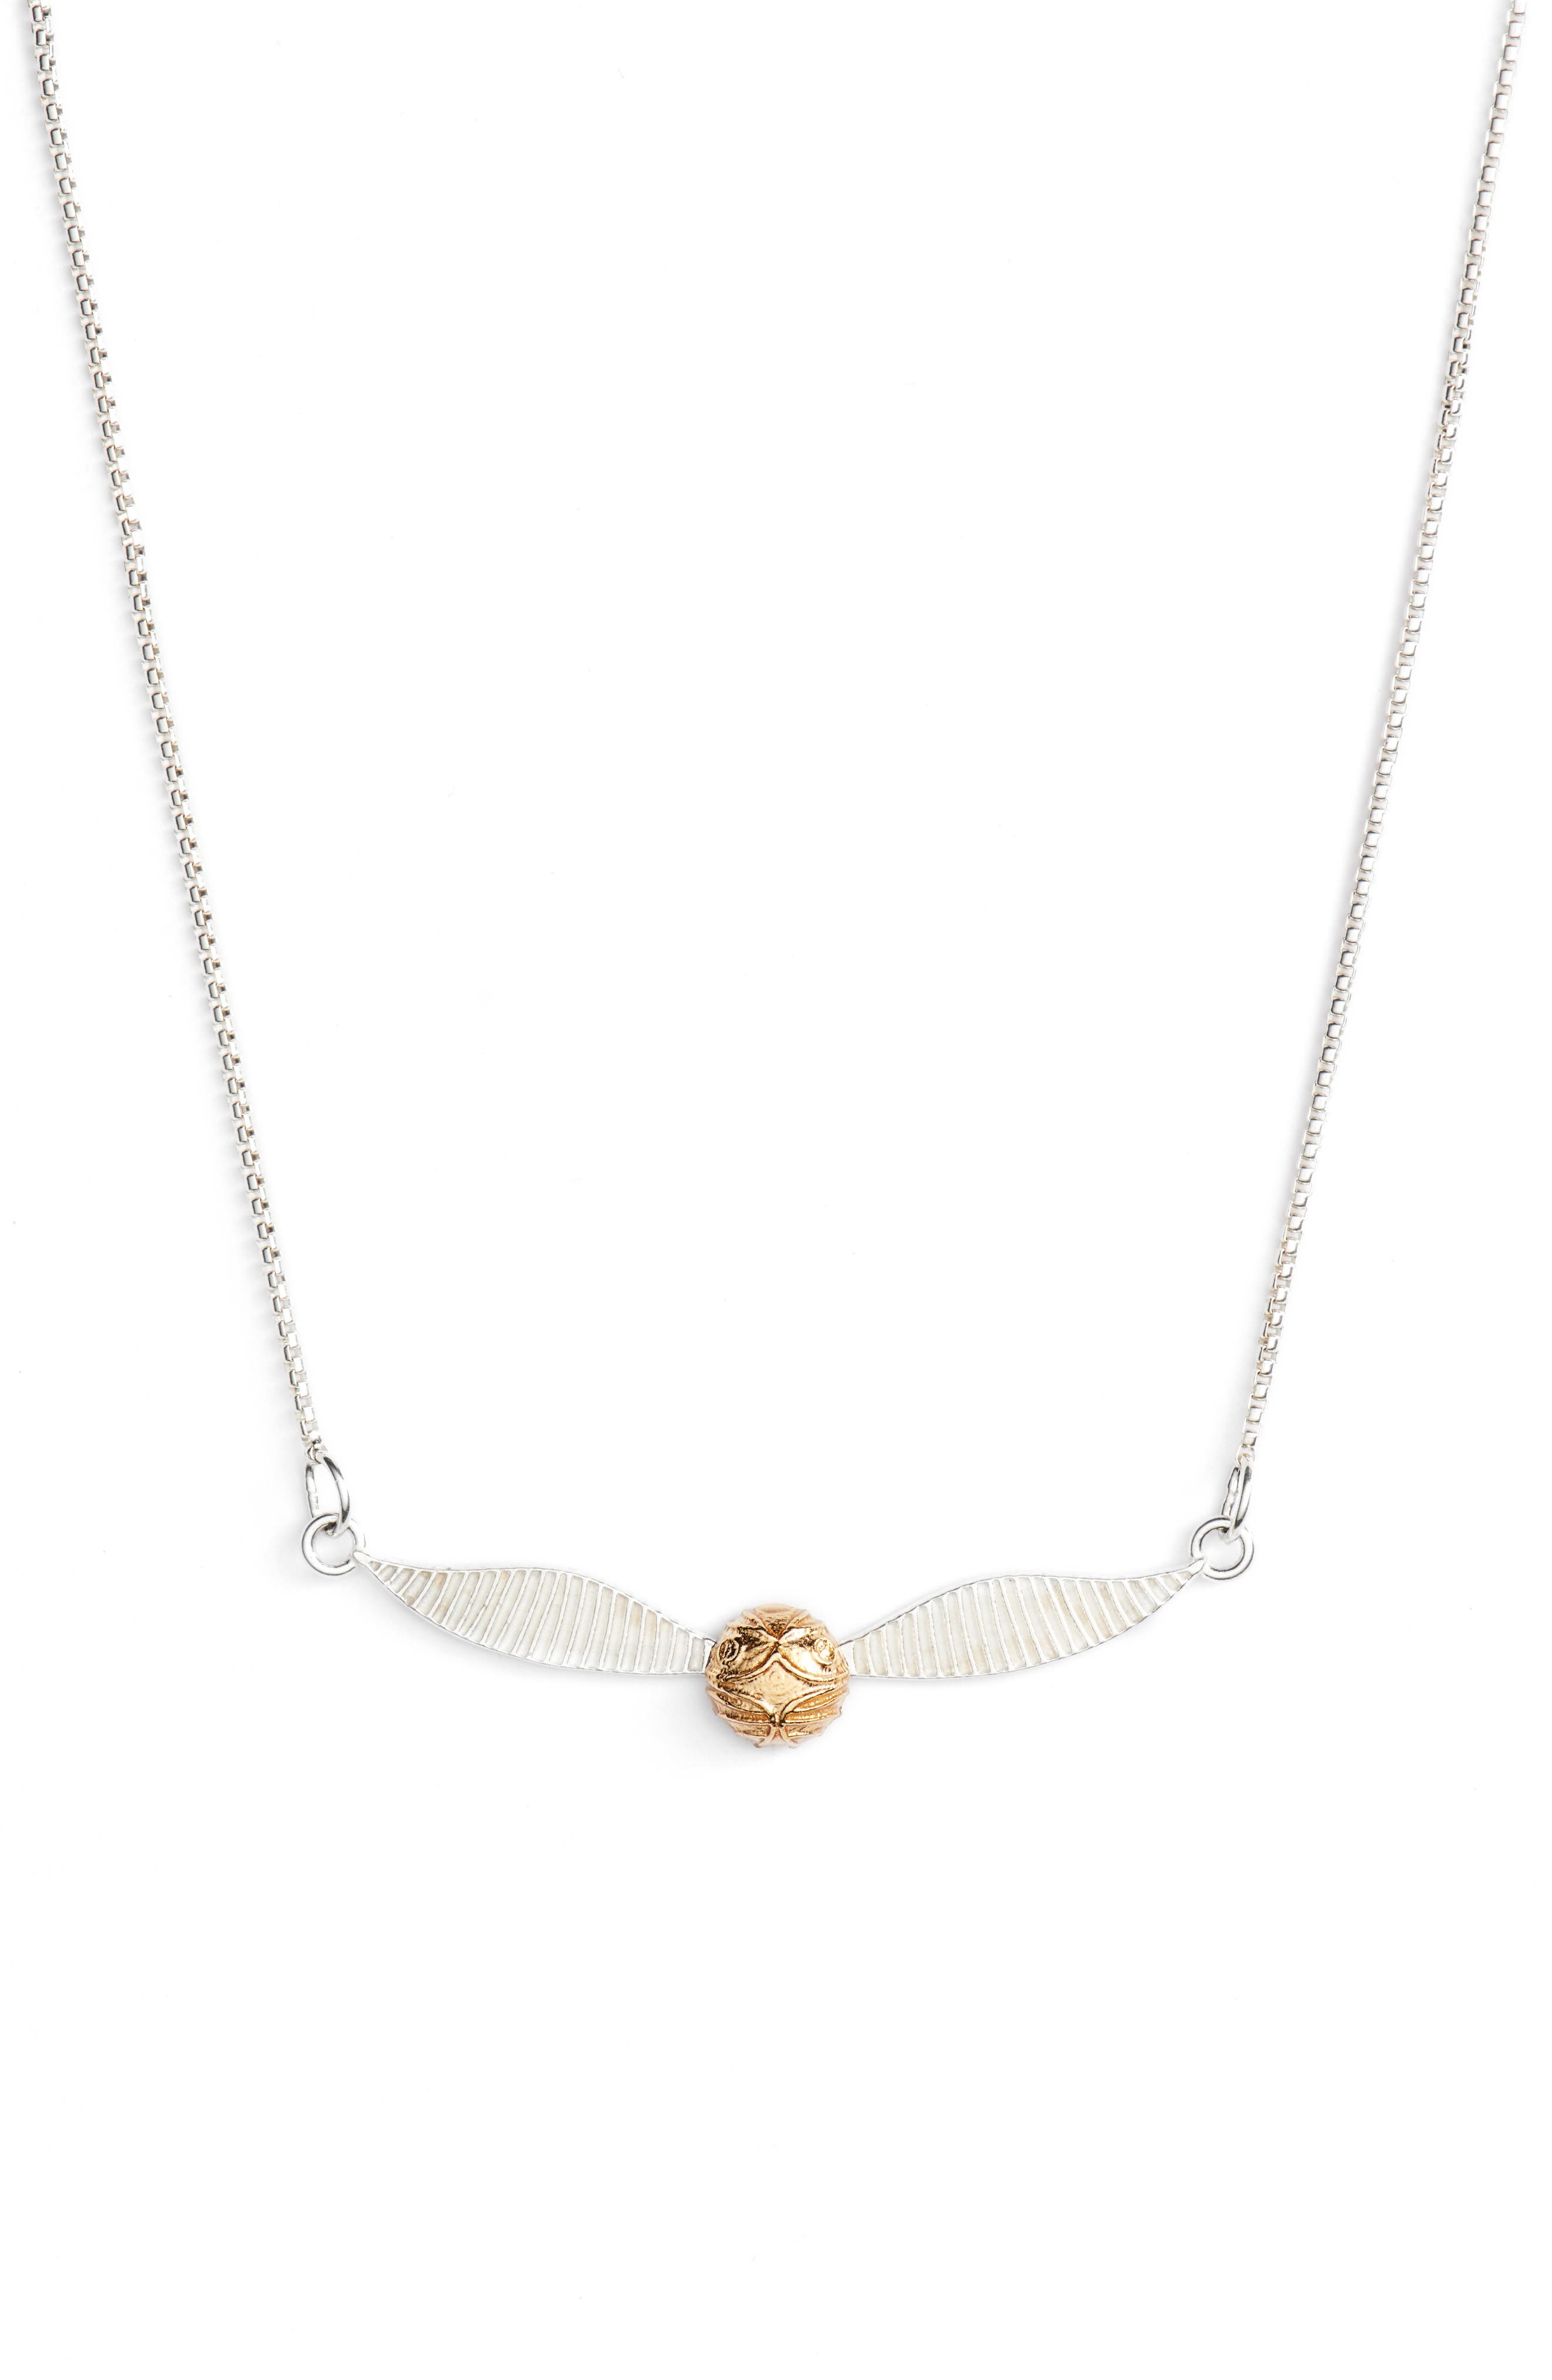 Harry Potter<sup>™</sup> Golden Snitch<sup>™</sup> Adjustable Necklace,                         Main,                         color, Two-Toned